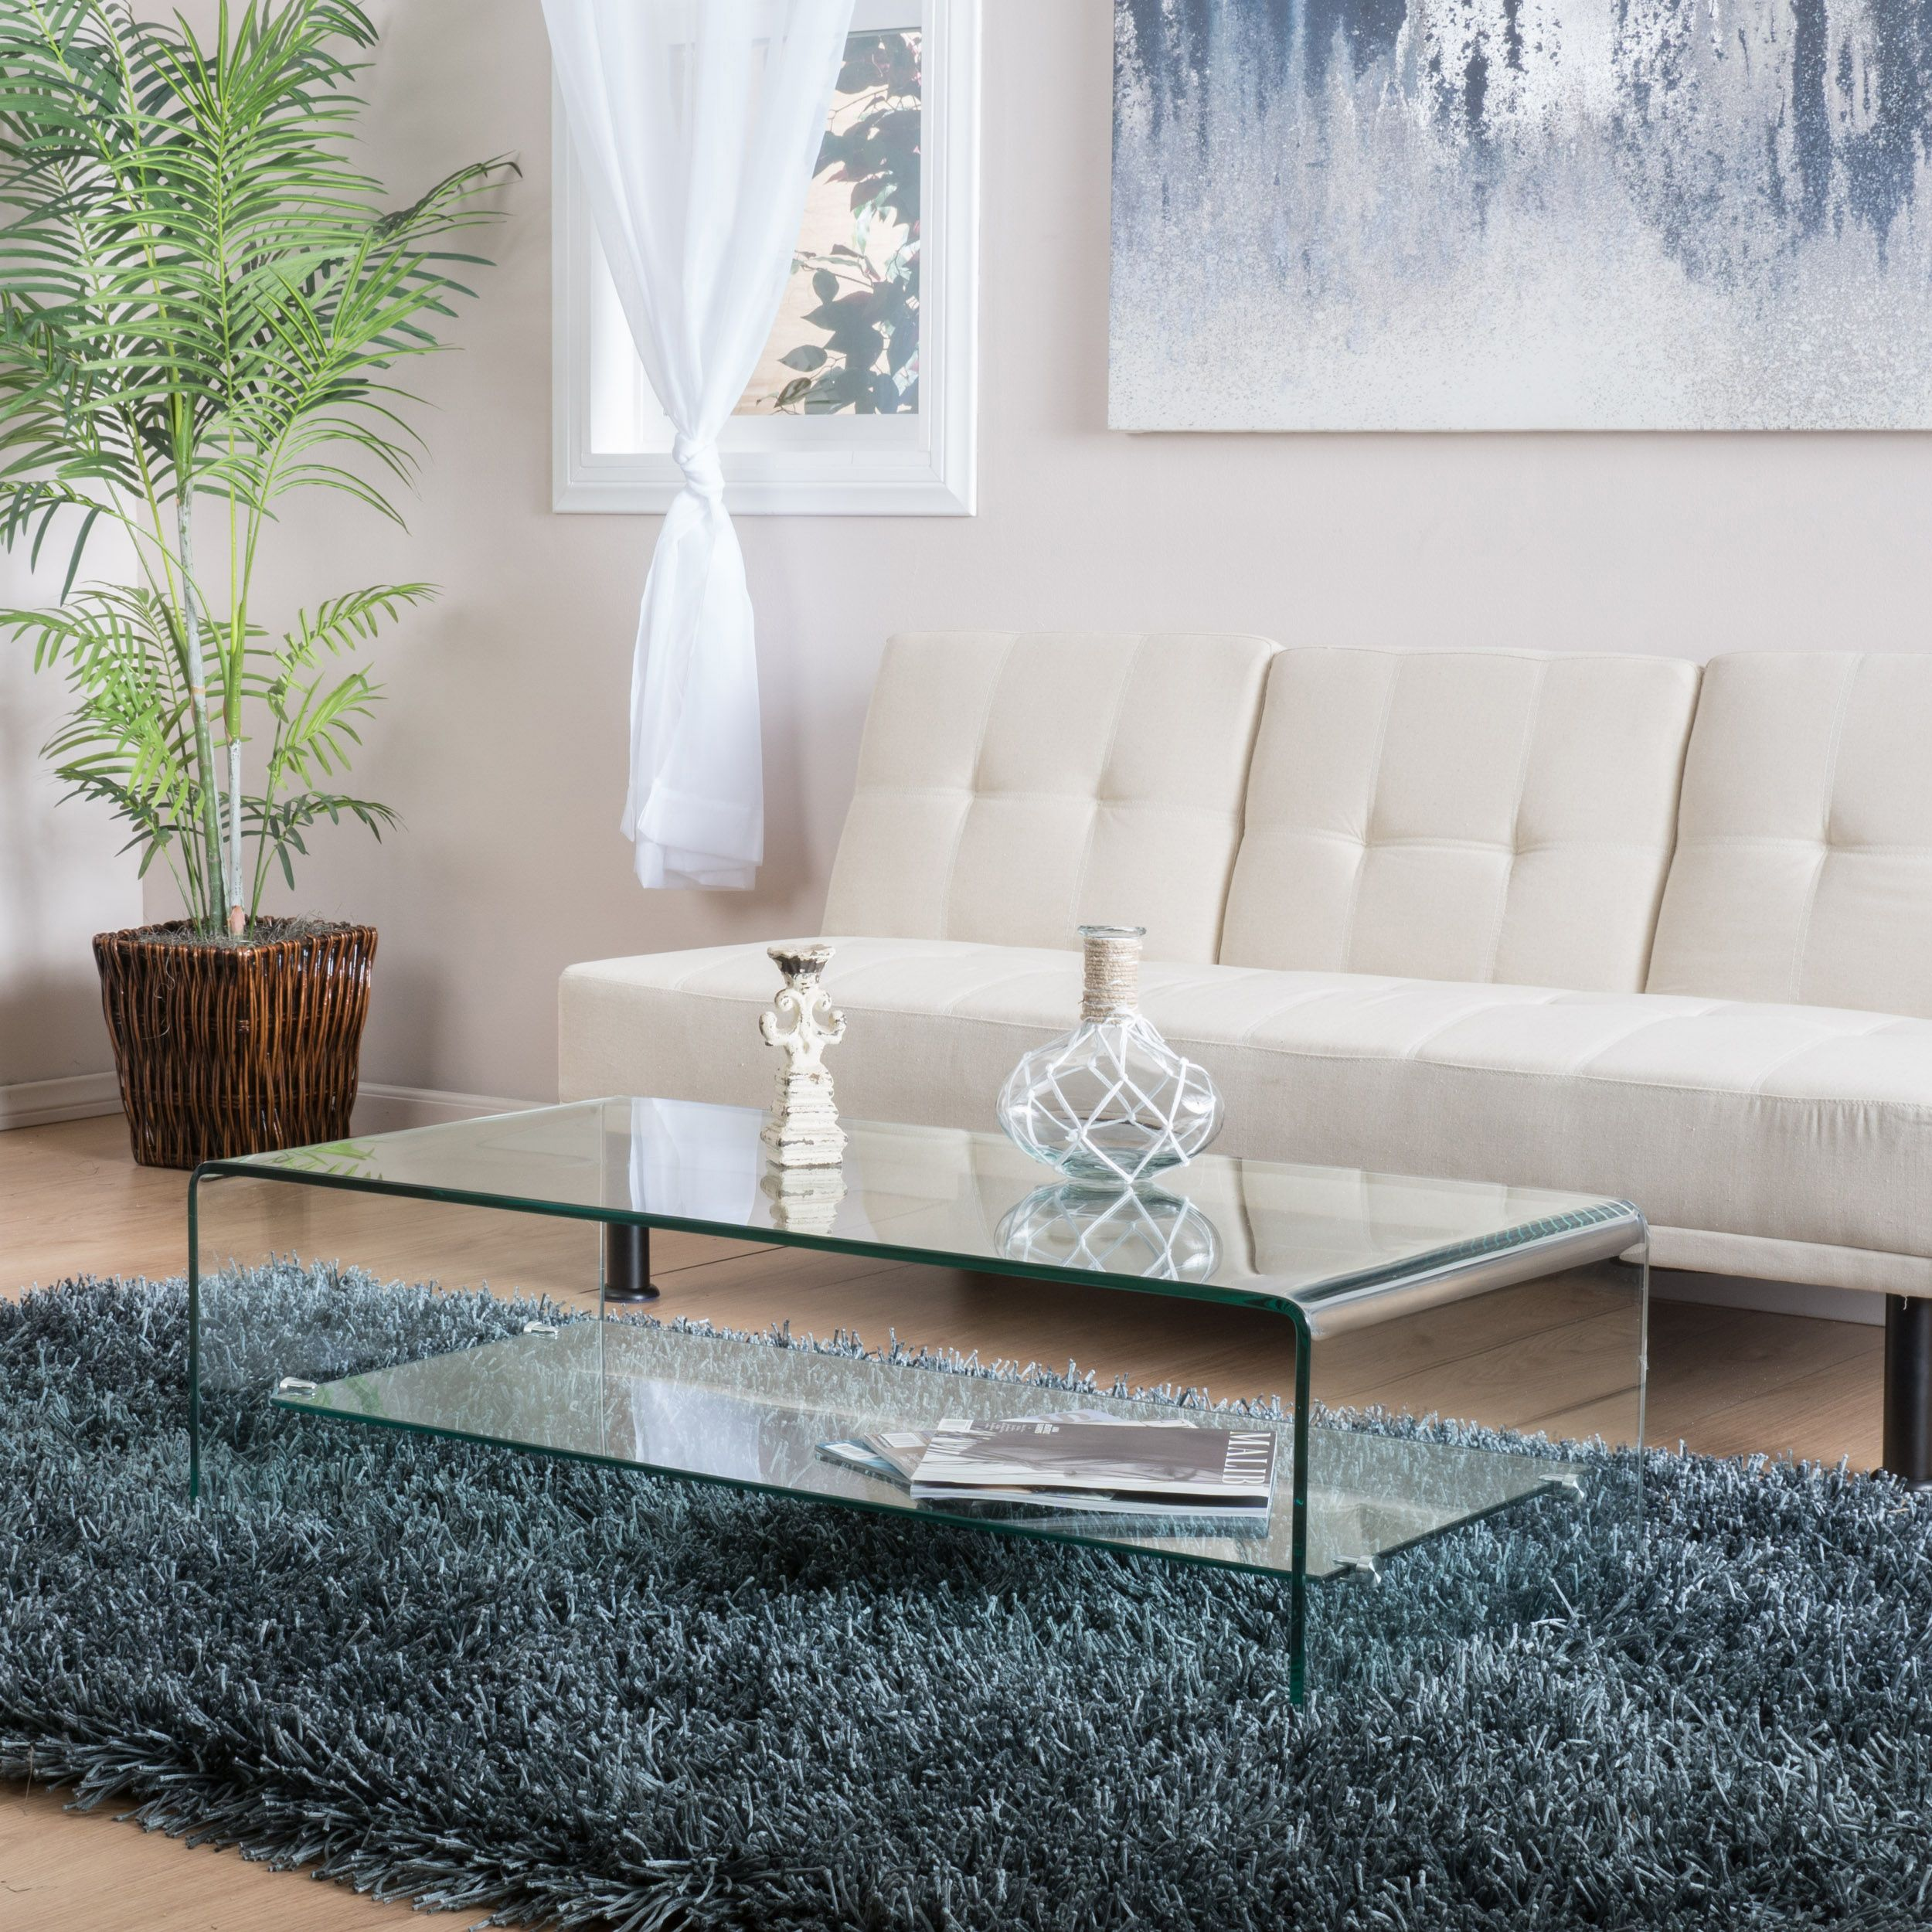 Noble House Roman Glass Coffee Table With Shelf Walmart Com Coffee Table With Shelf Glass Coffee Table Coffee Table [ 2500 x 2500 Pixel ]